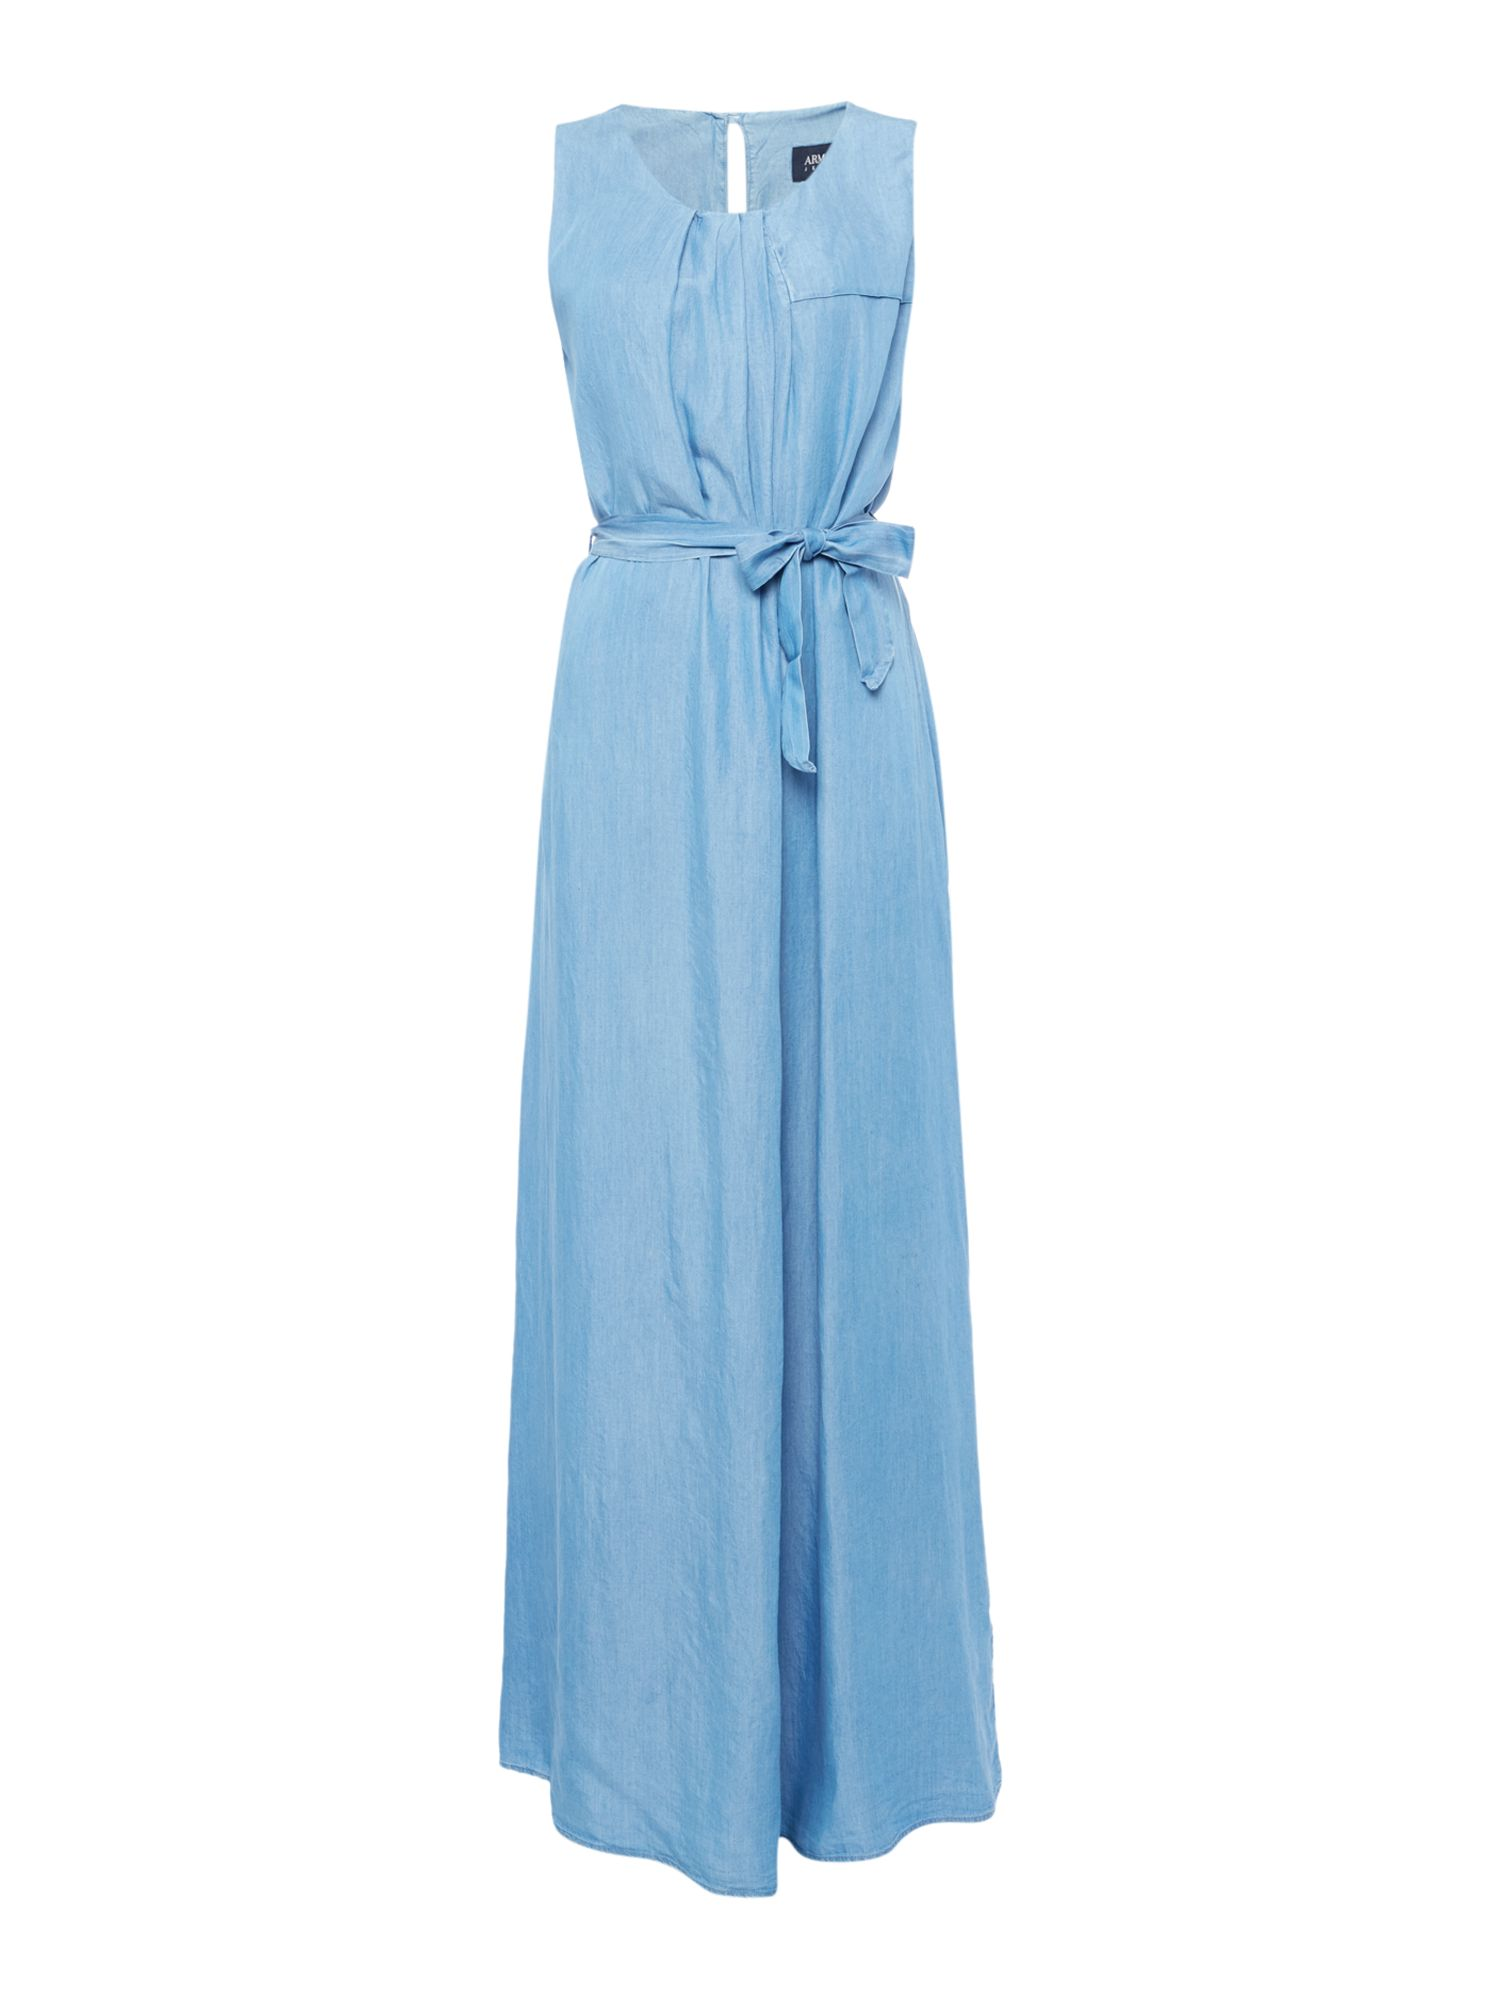 Armani Jeans Maxi dress in denim Chambray